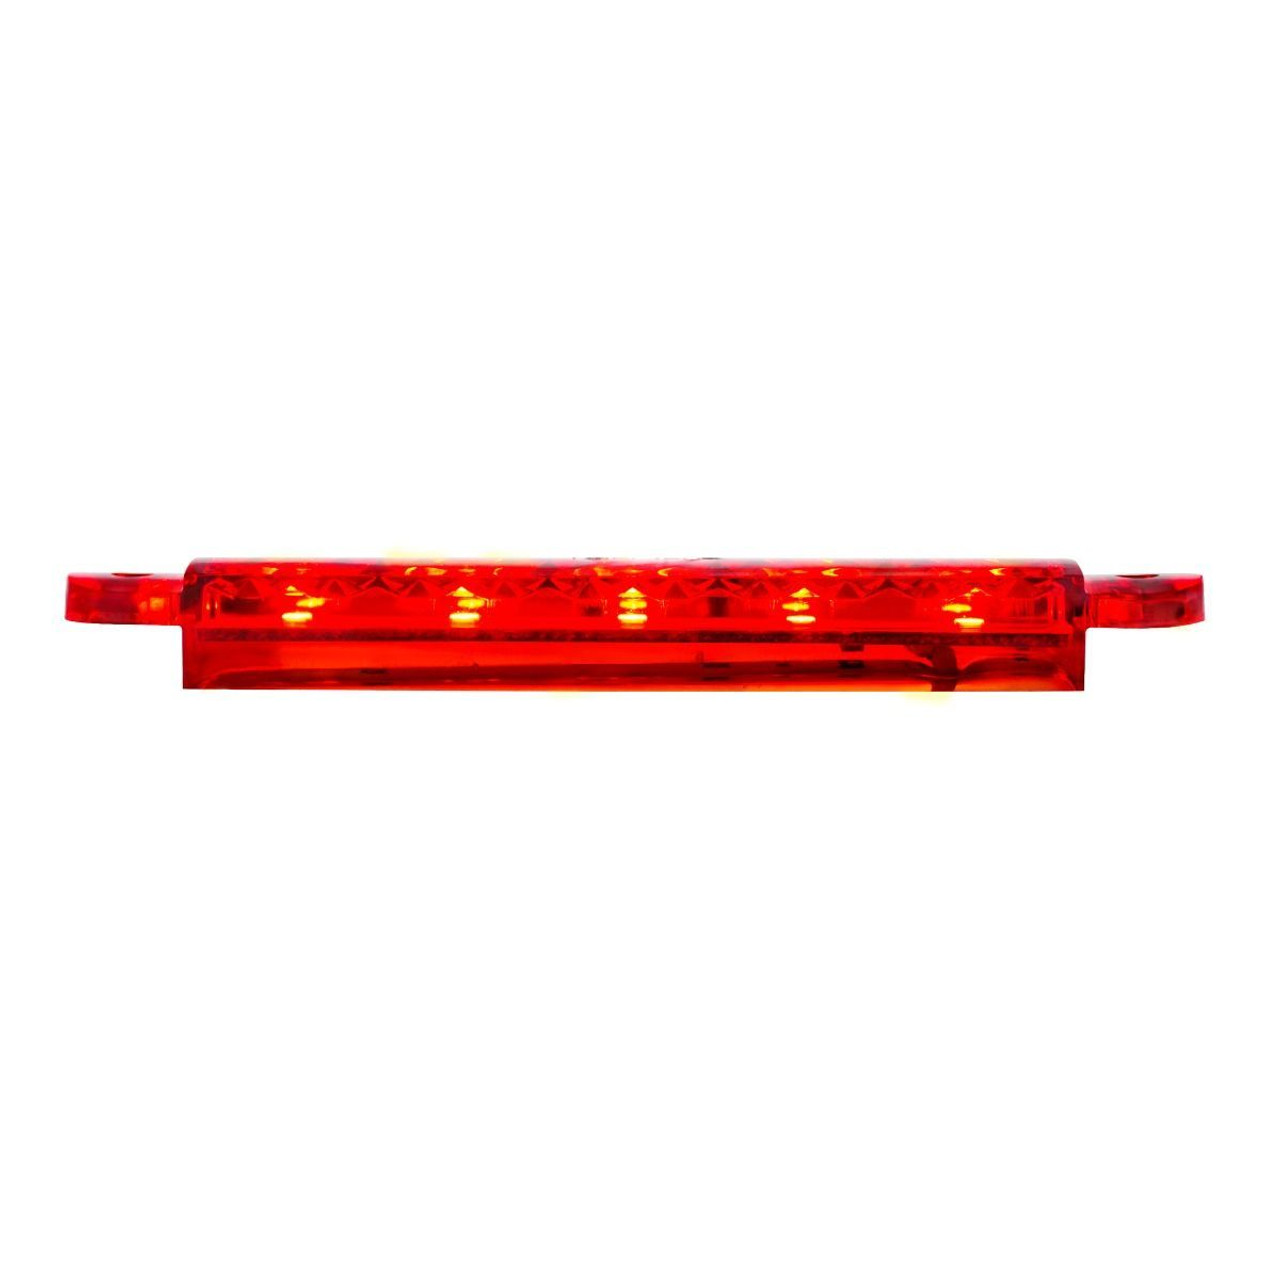 "5"" 5 Red SMD LED Light Strip With 3-Wire Connection - Hot Rat Street Rod, Trailer"